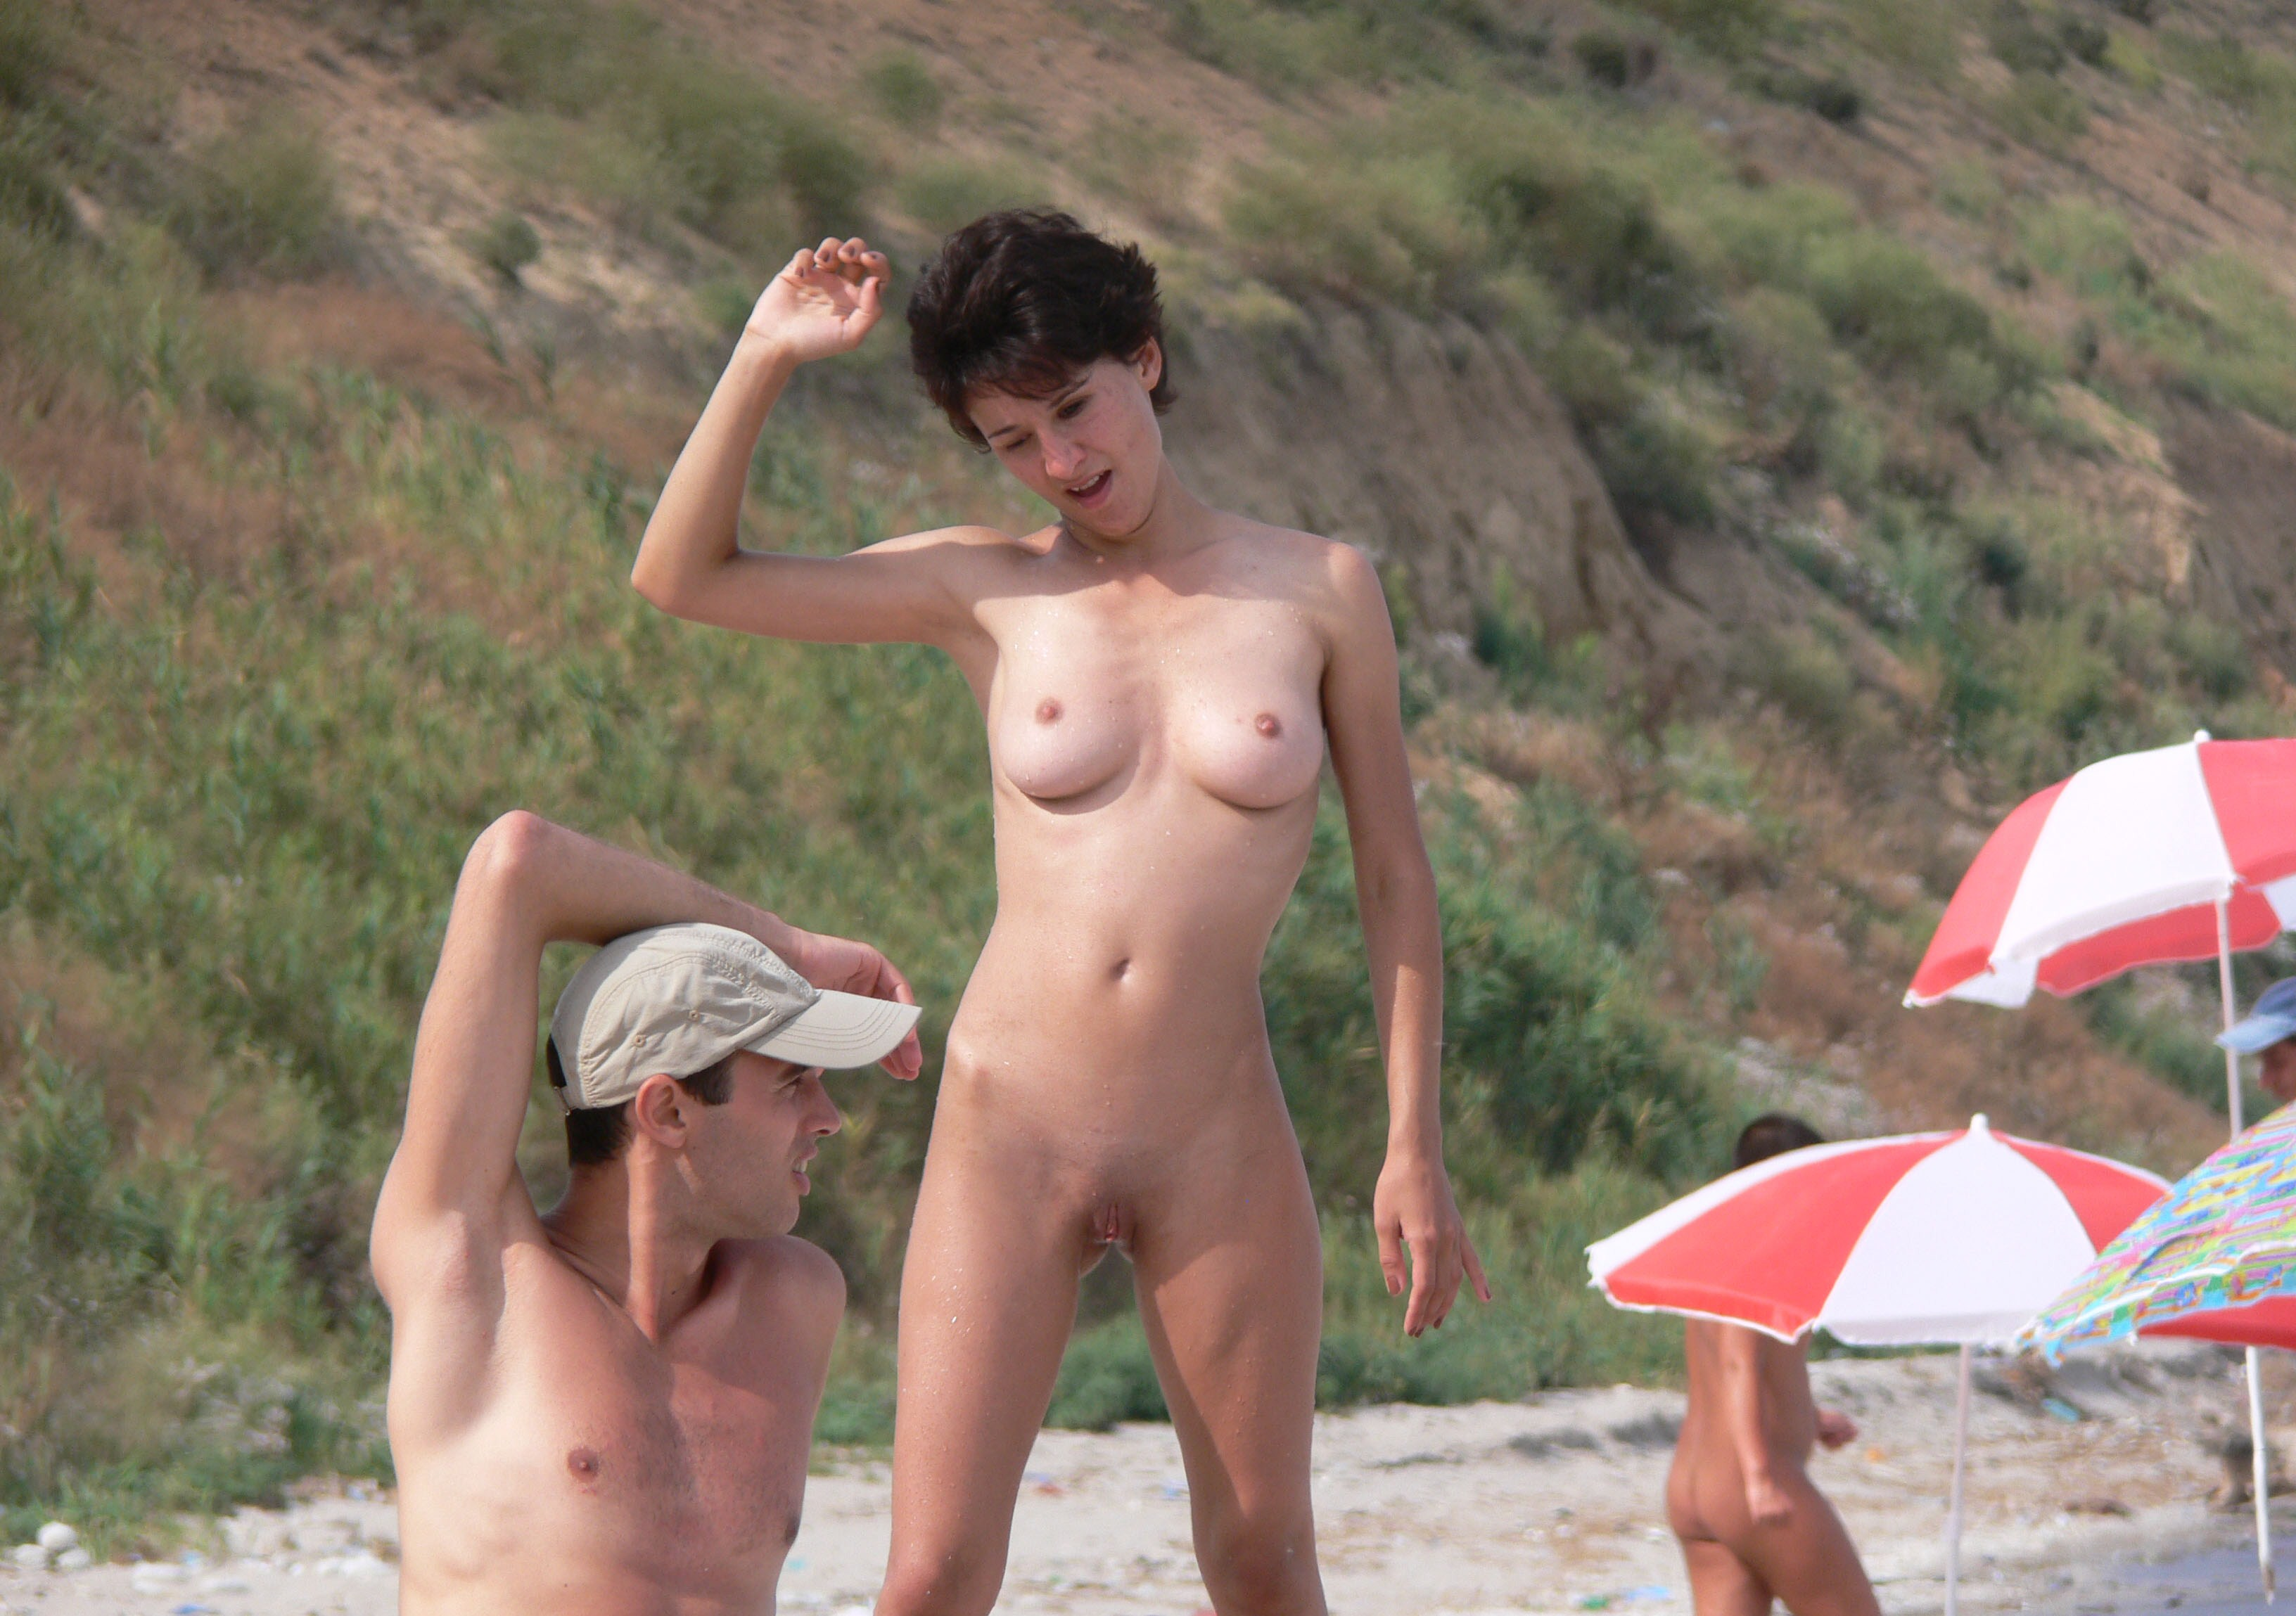 Spy incredible couple brunette nude topless beach part4 7